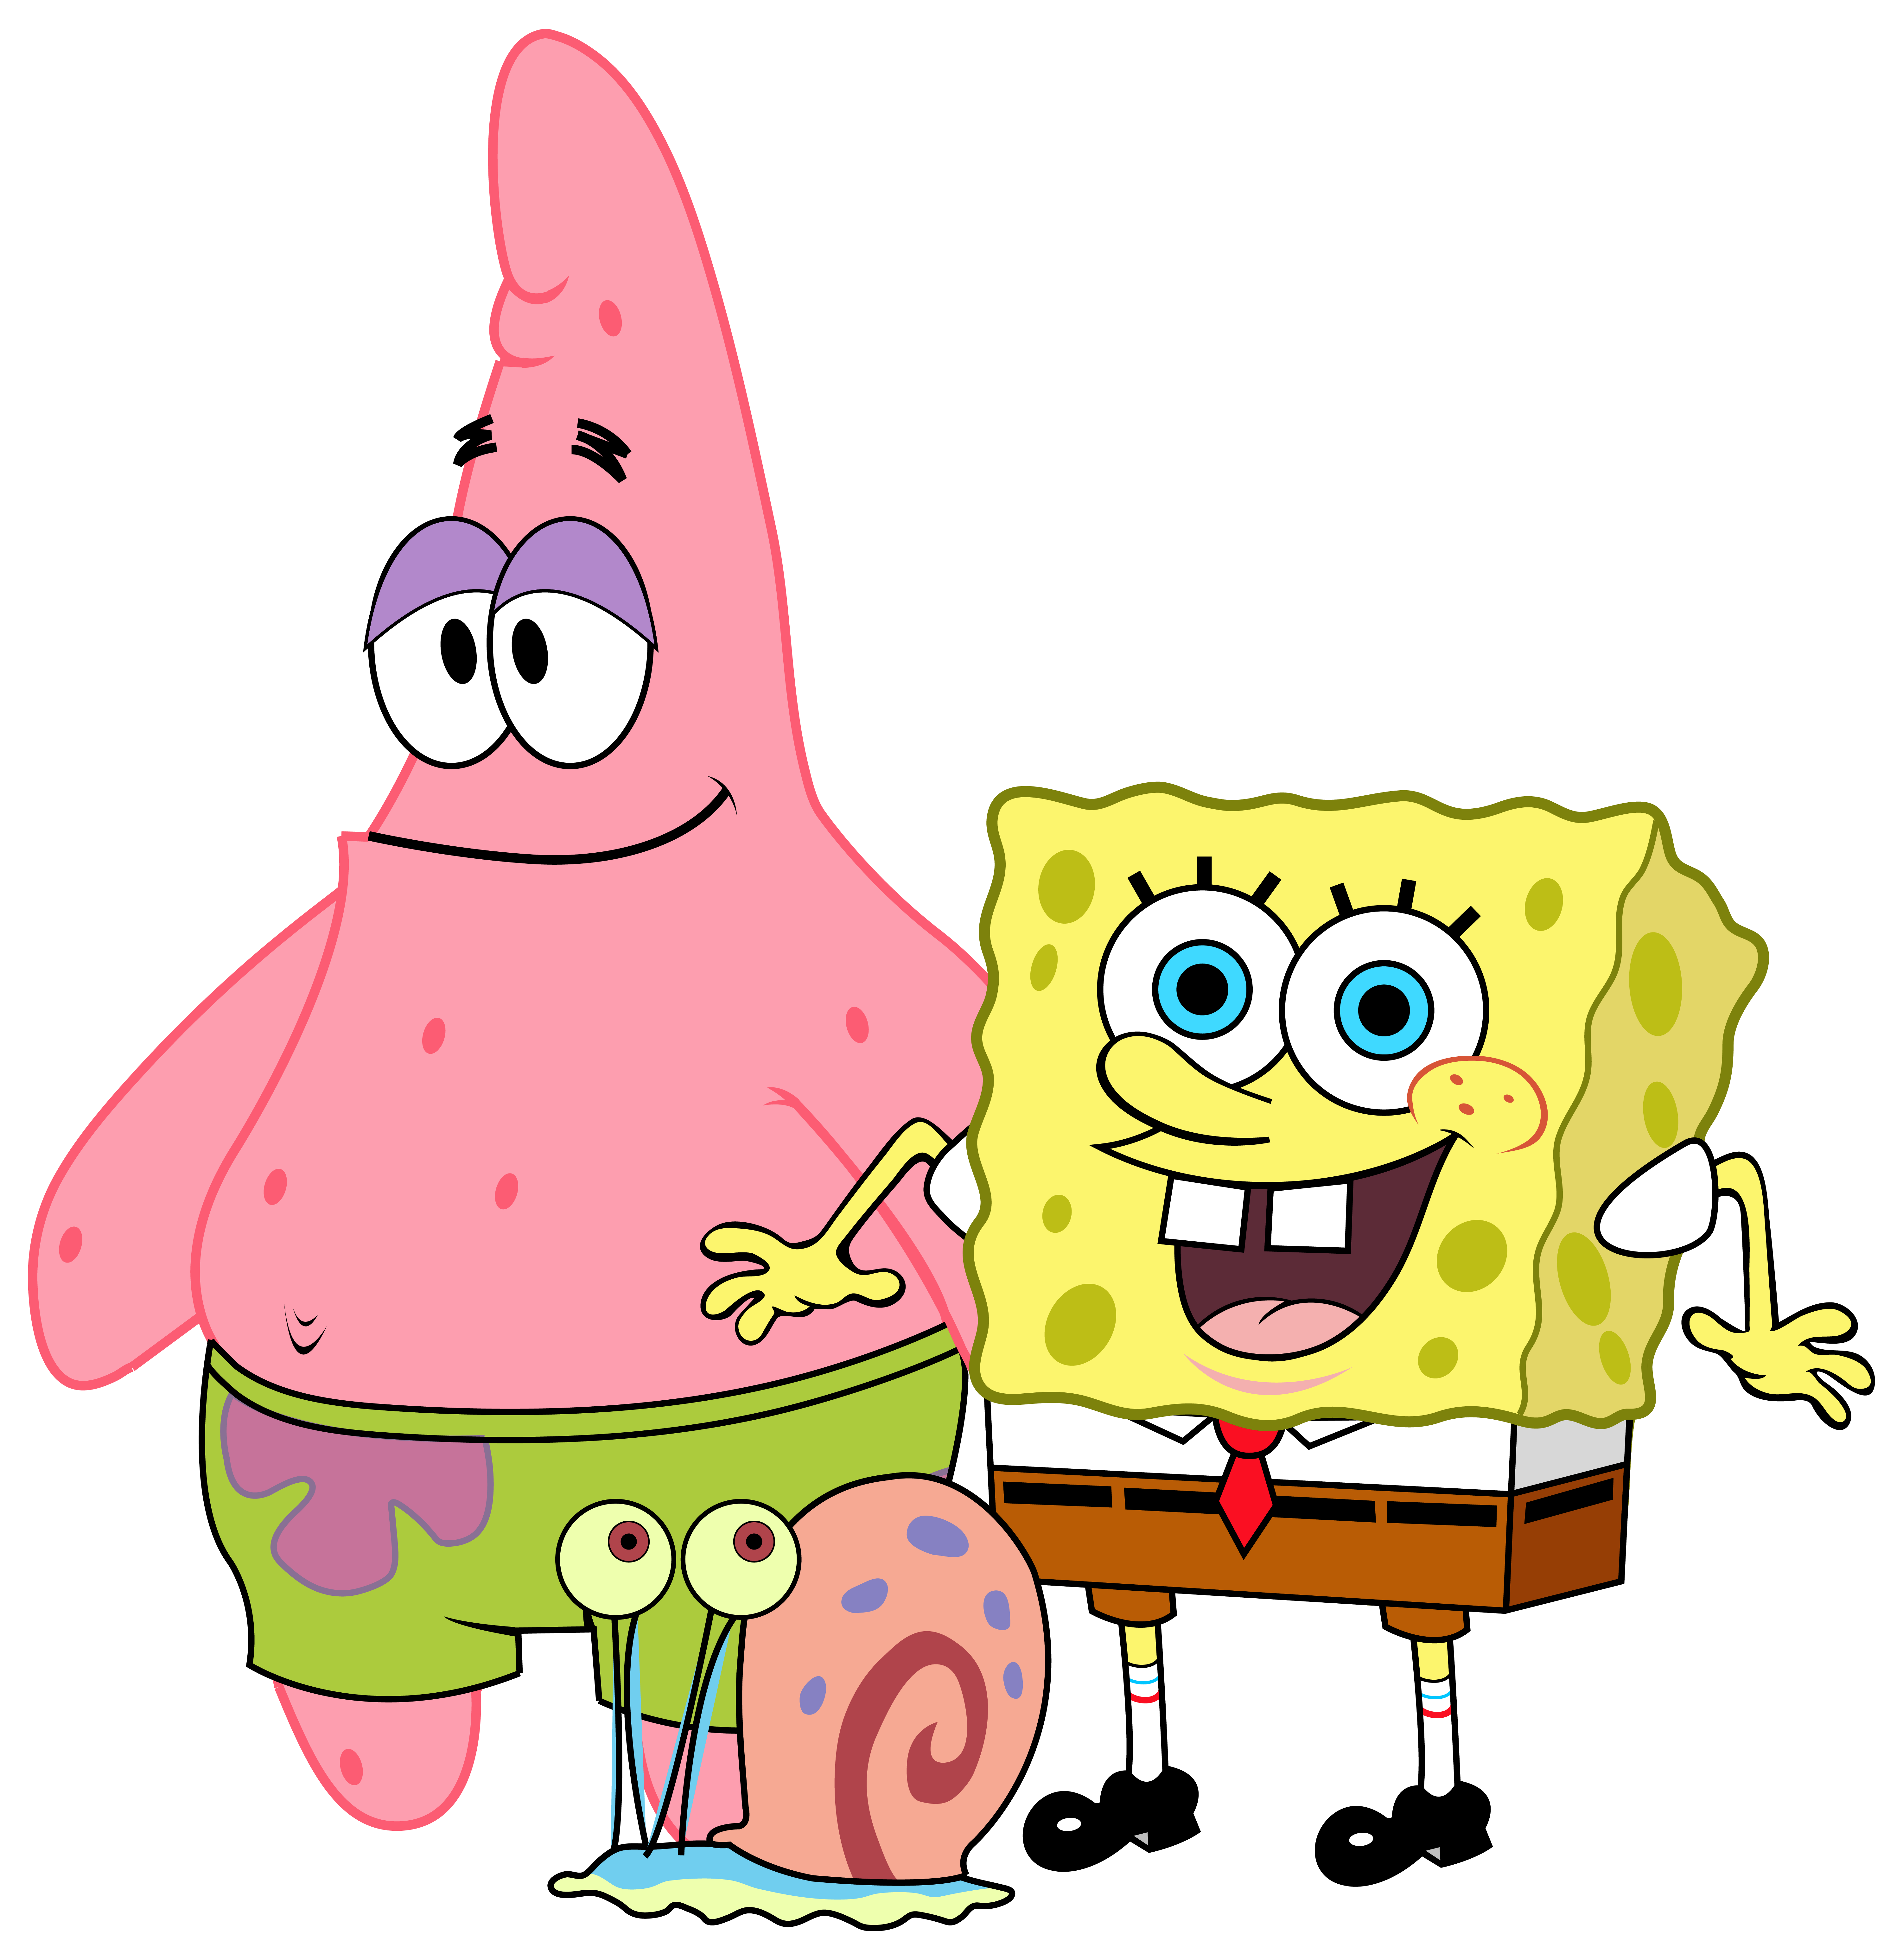 Spongebob patrick png. And friends clipart image